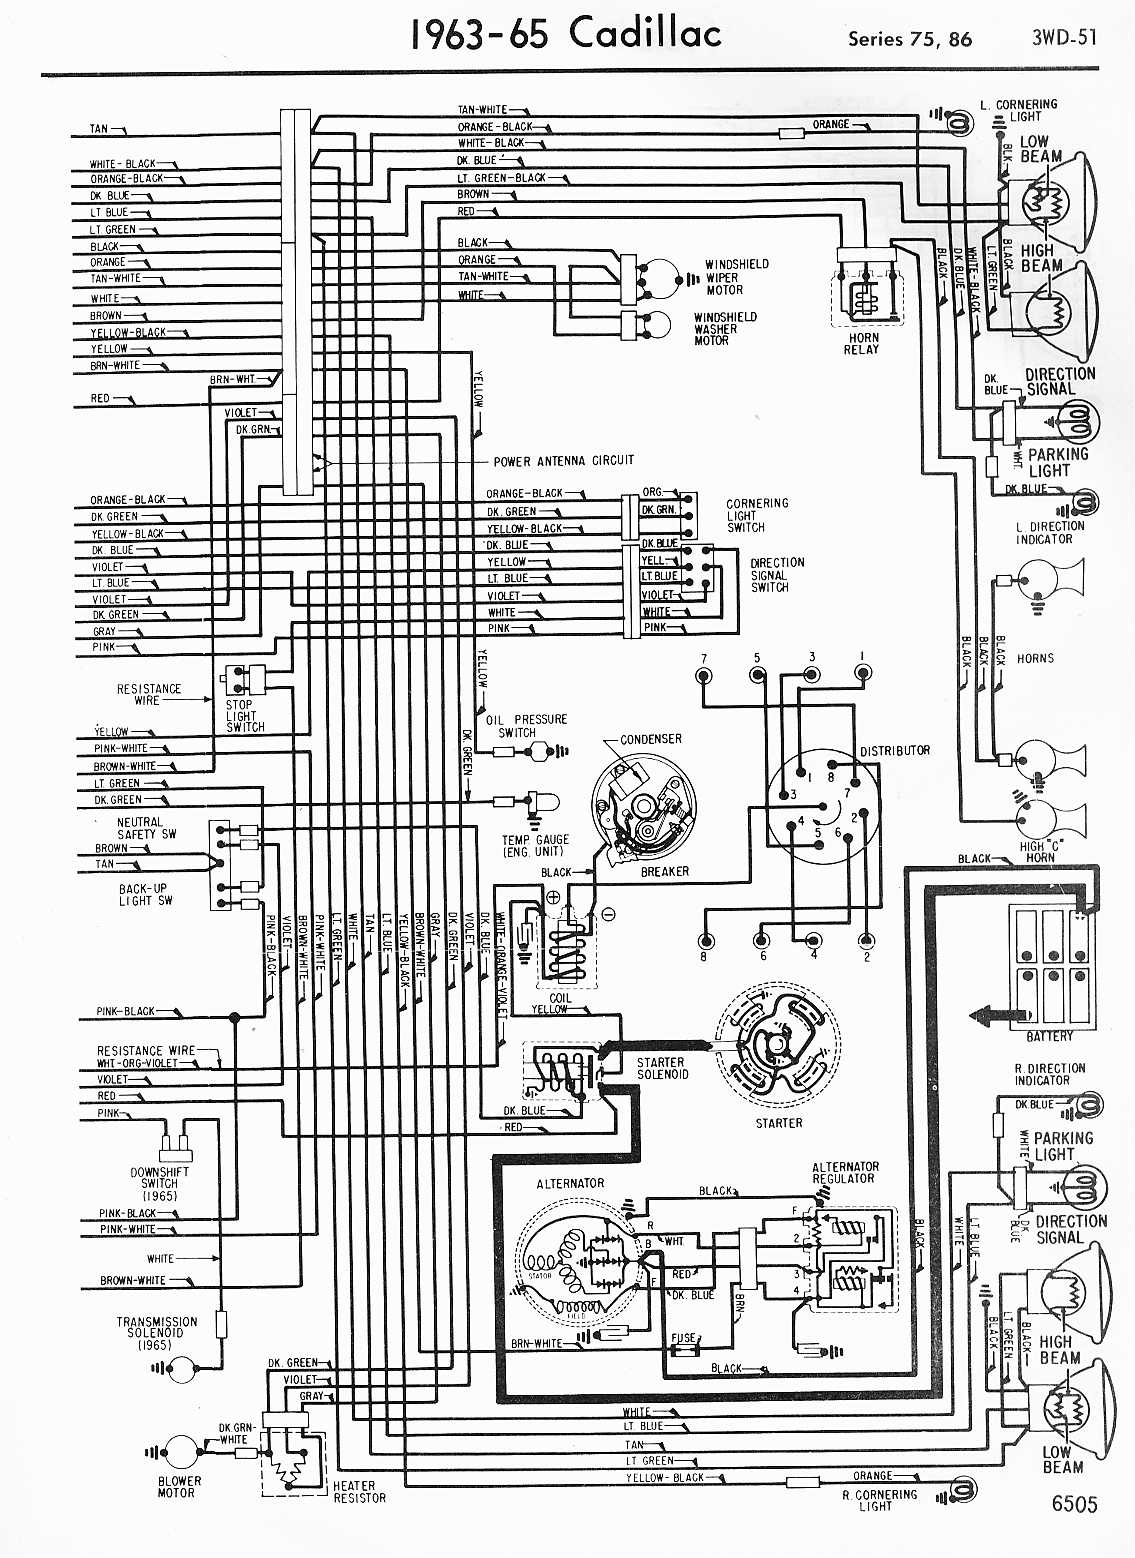 Cadillac Wiring Diagrams 1957 1965 Old Trailer Light Diagram Two 1964 Series 75 Right